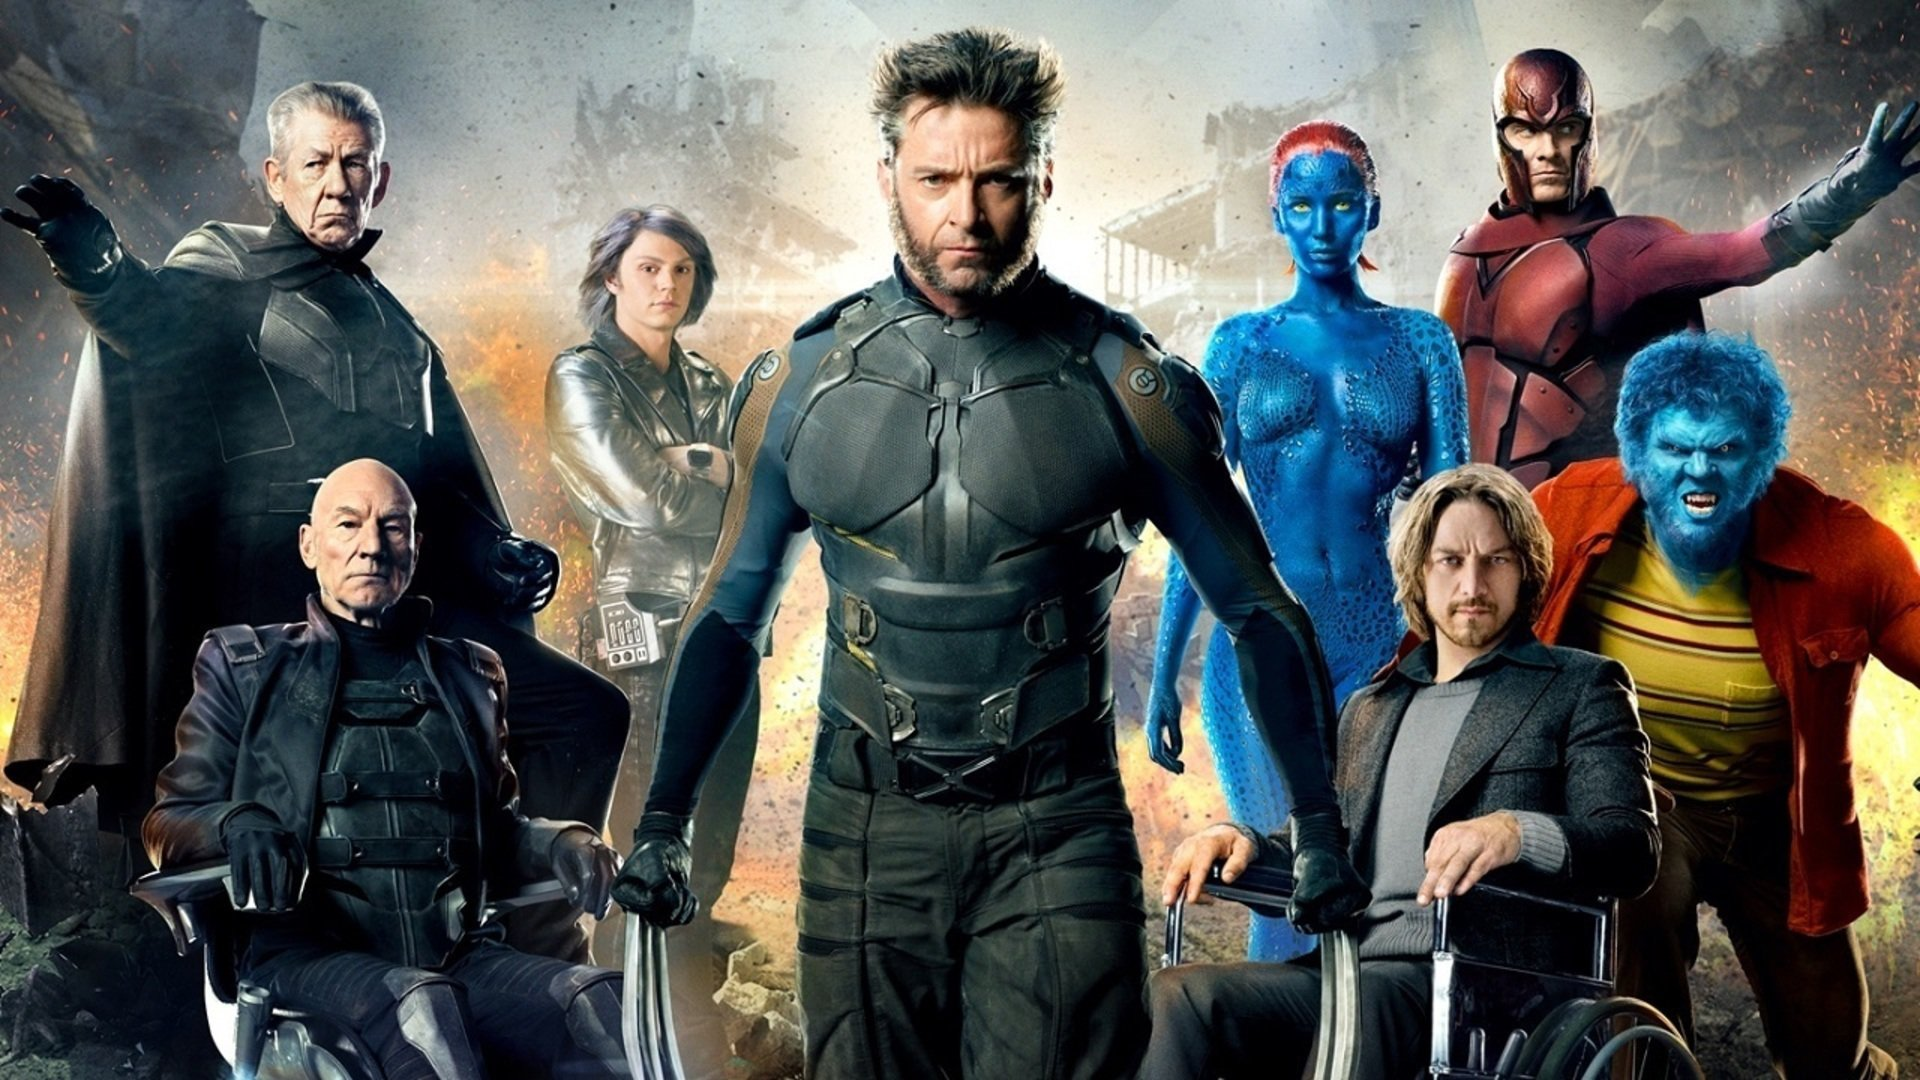 X Men Days Of Future Past Wallpapers Pictures Images 1920x1080